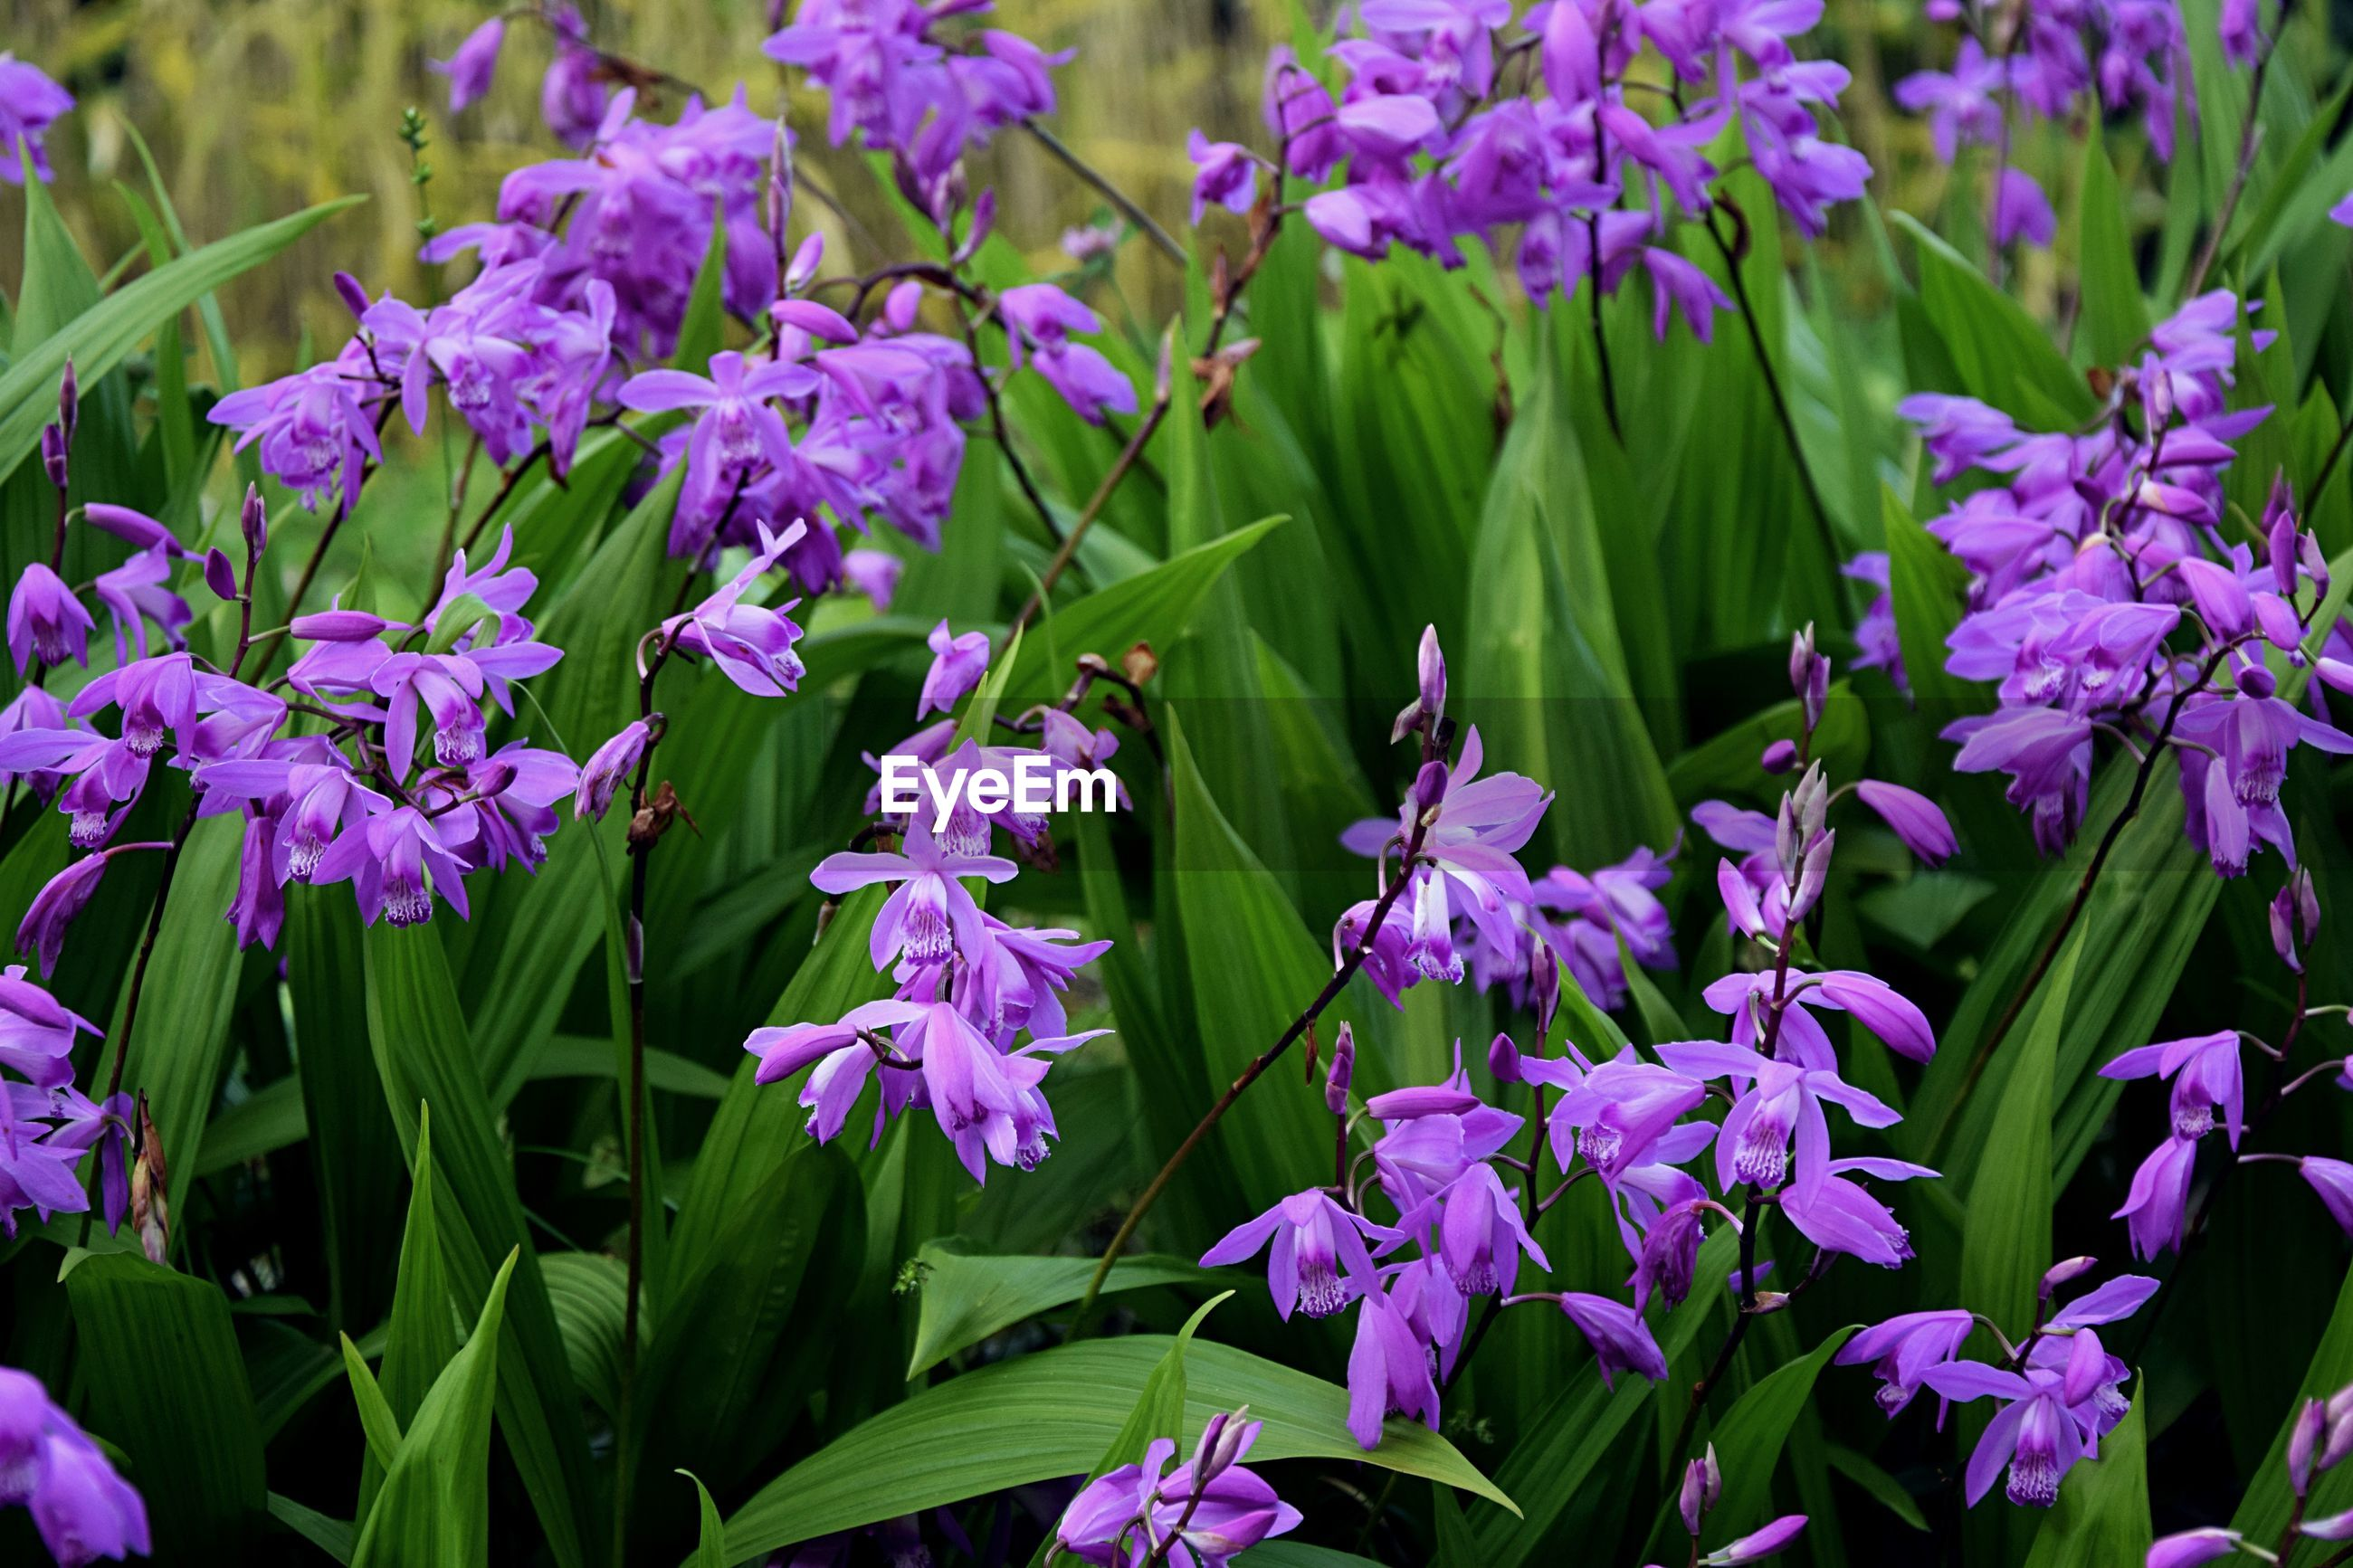 CLOSE-UP OF PURPLE FLOWERS BLOOMING IN PLANT